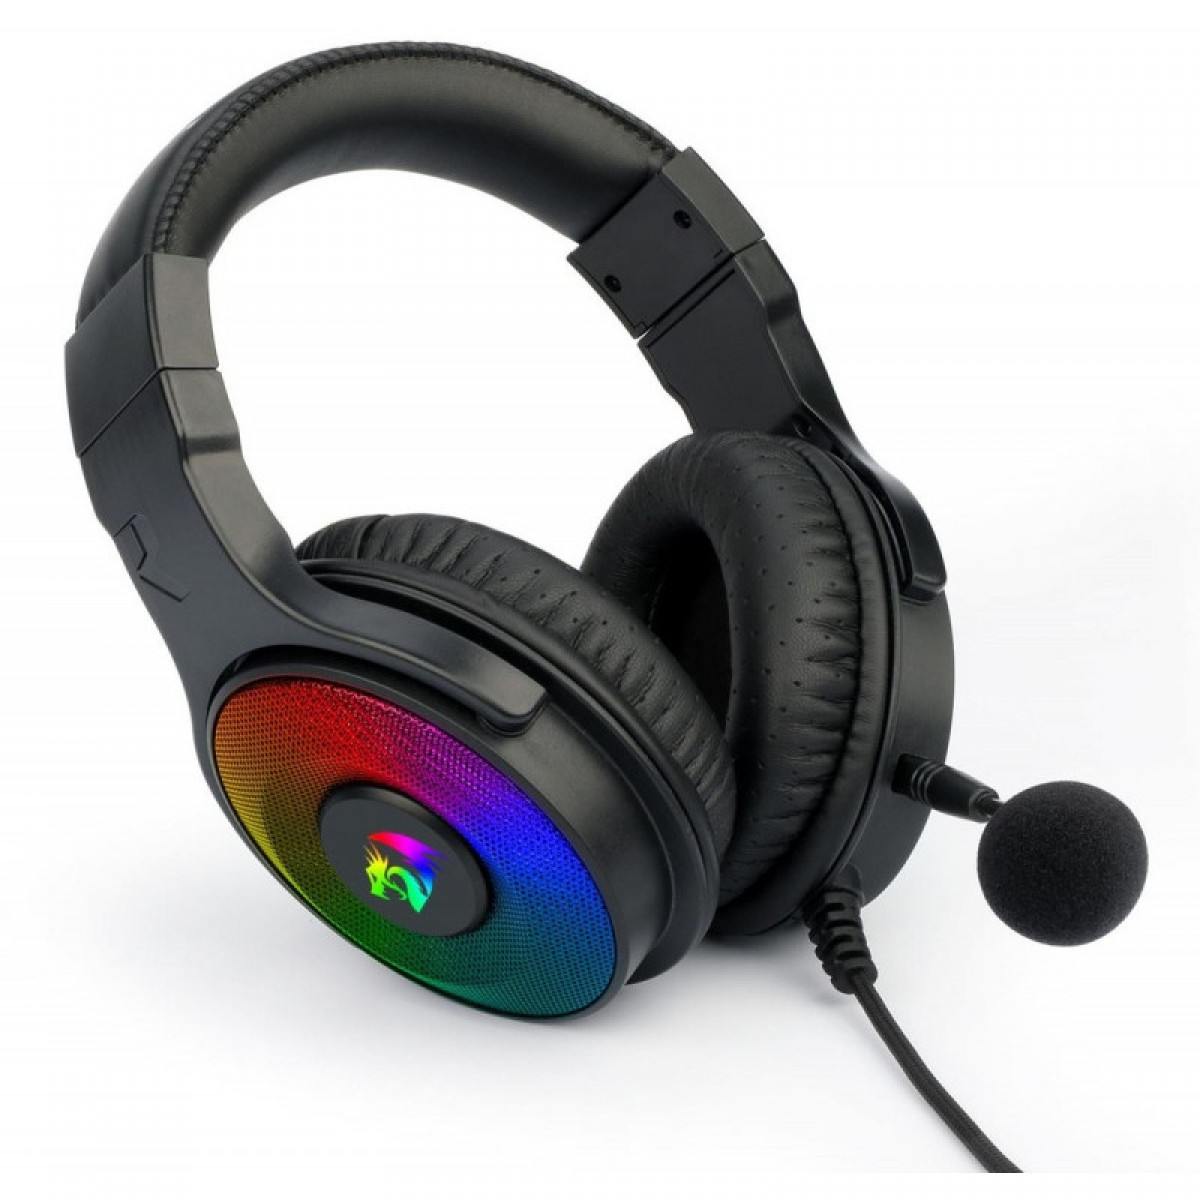 Headset Gamer ReDragon, Pandora 2, RGB, USB + 3.5mm , Microfone Destacável, H350RGB-1